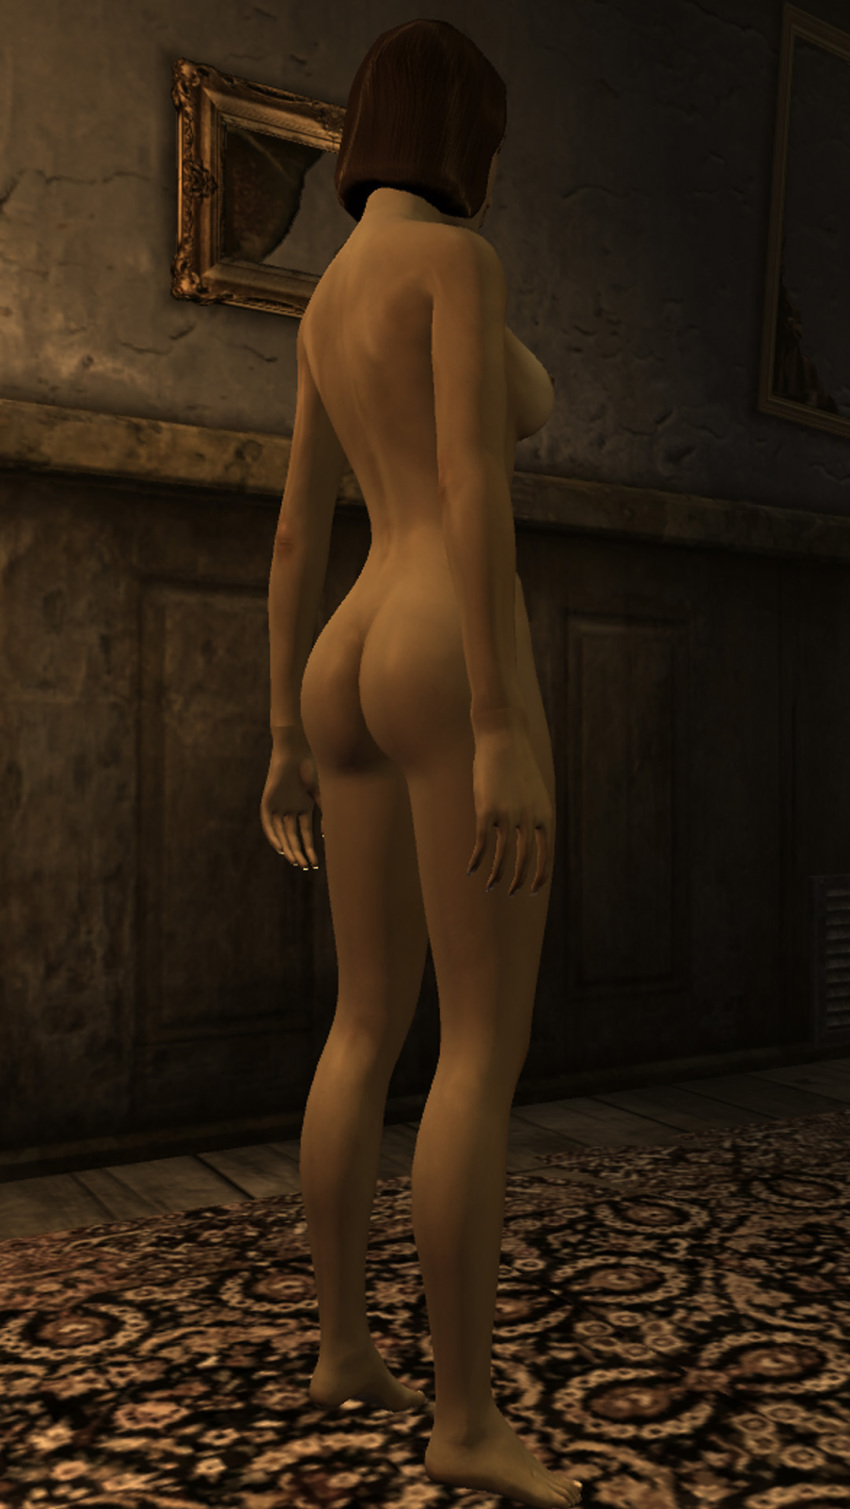 4 mod fallout cait nude How to train your dragon stormfly